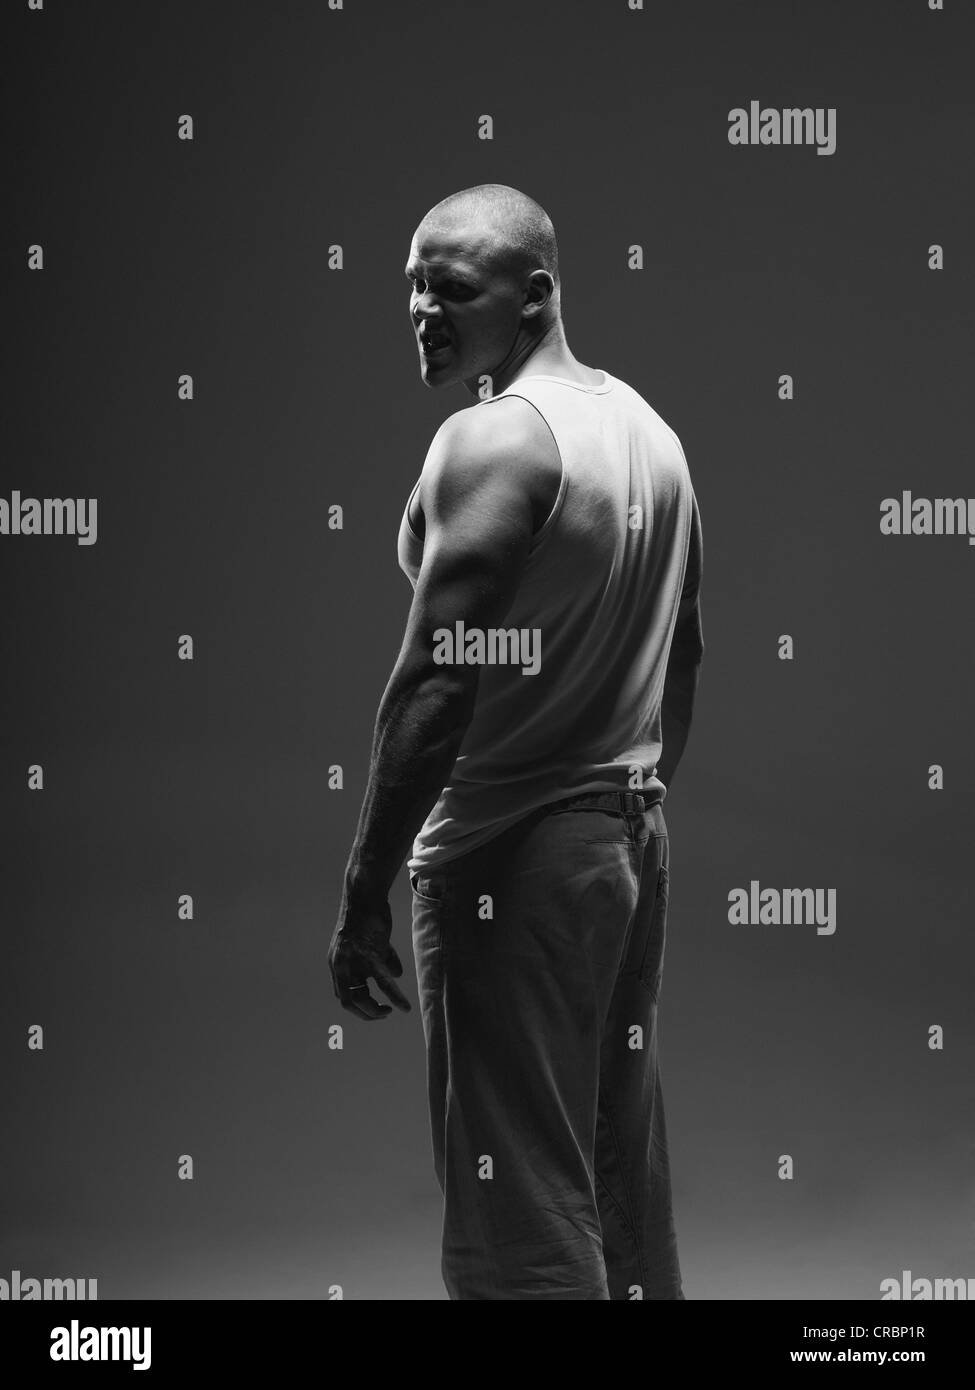 Athlete frowning over shoulder indoors - Stock Image